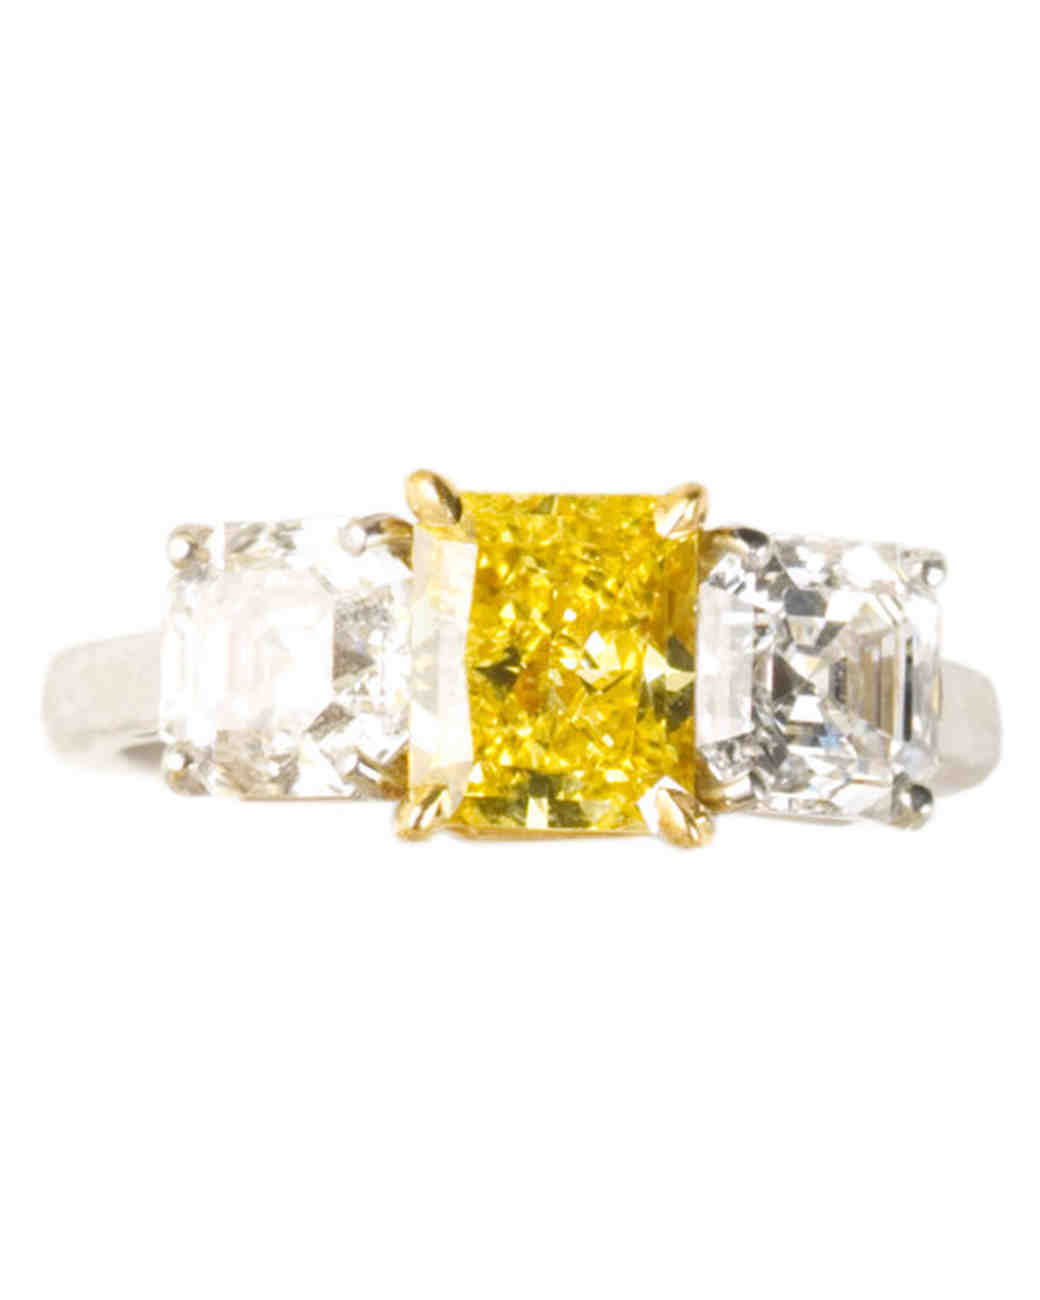 msw_sum10_yellow_ring_ivankatrump1.jpg